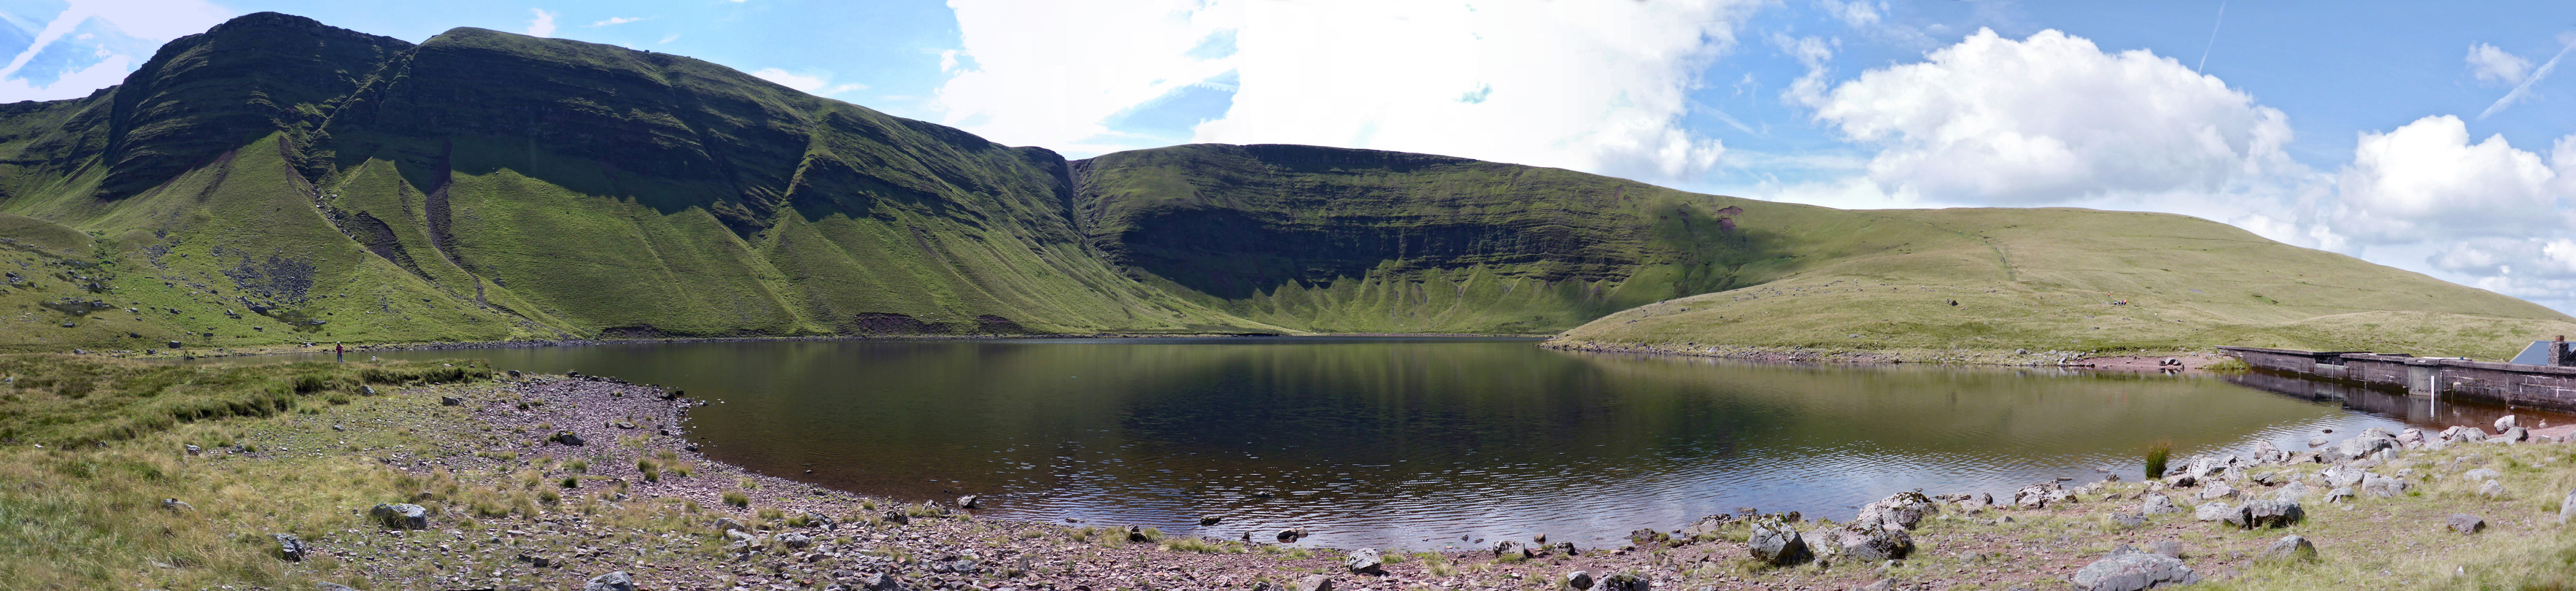 Shoreline of Llyn y Fan Fach